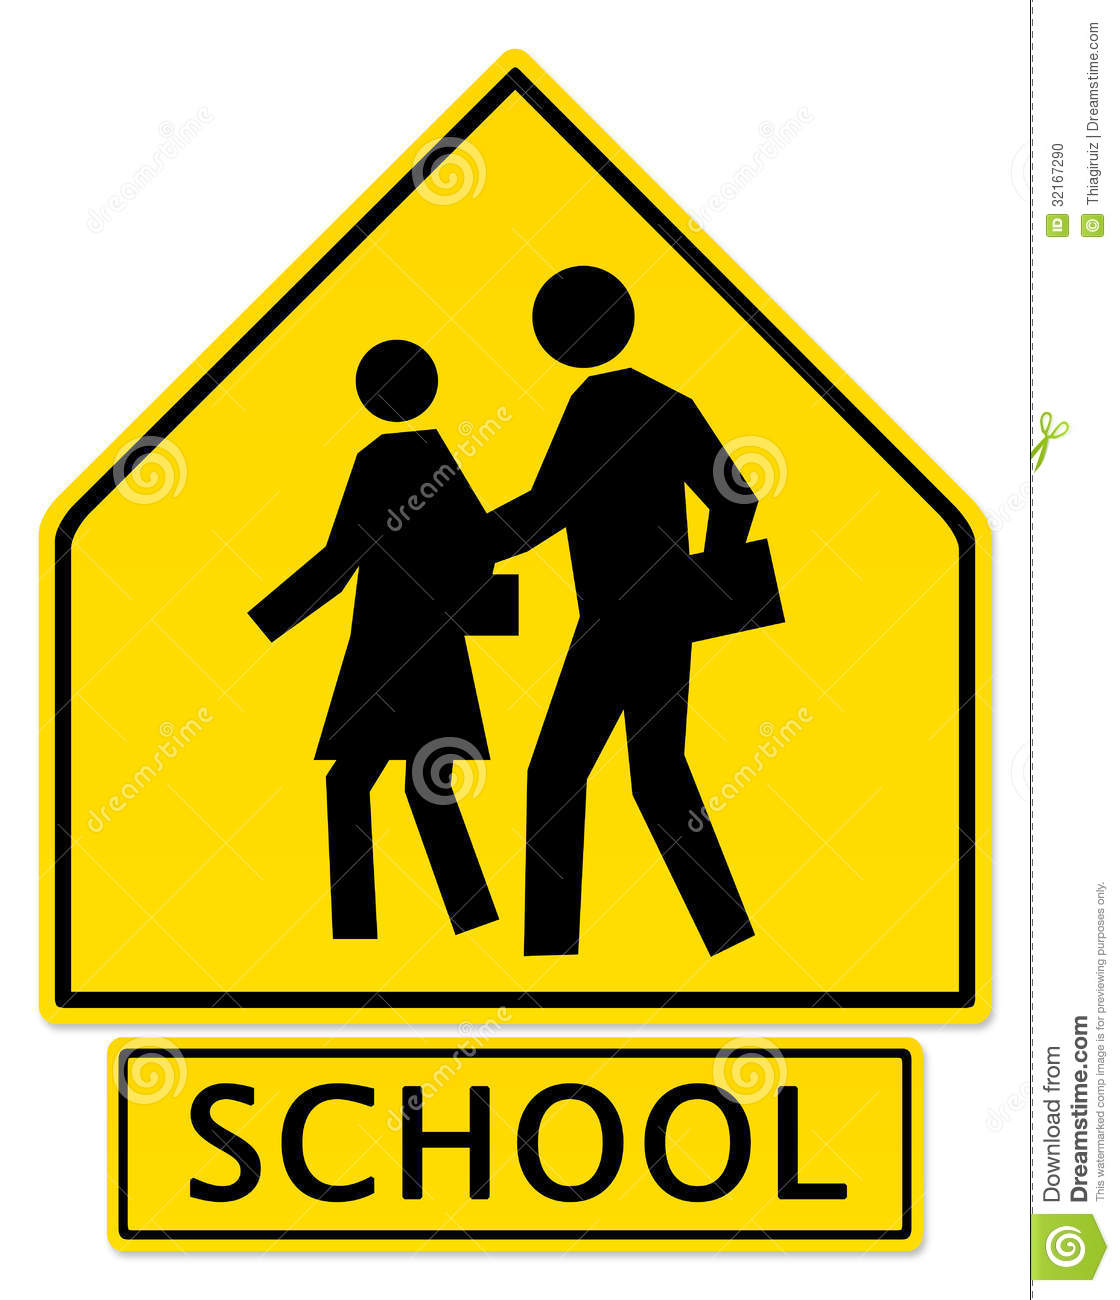 School zone clipart.